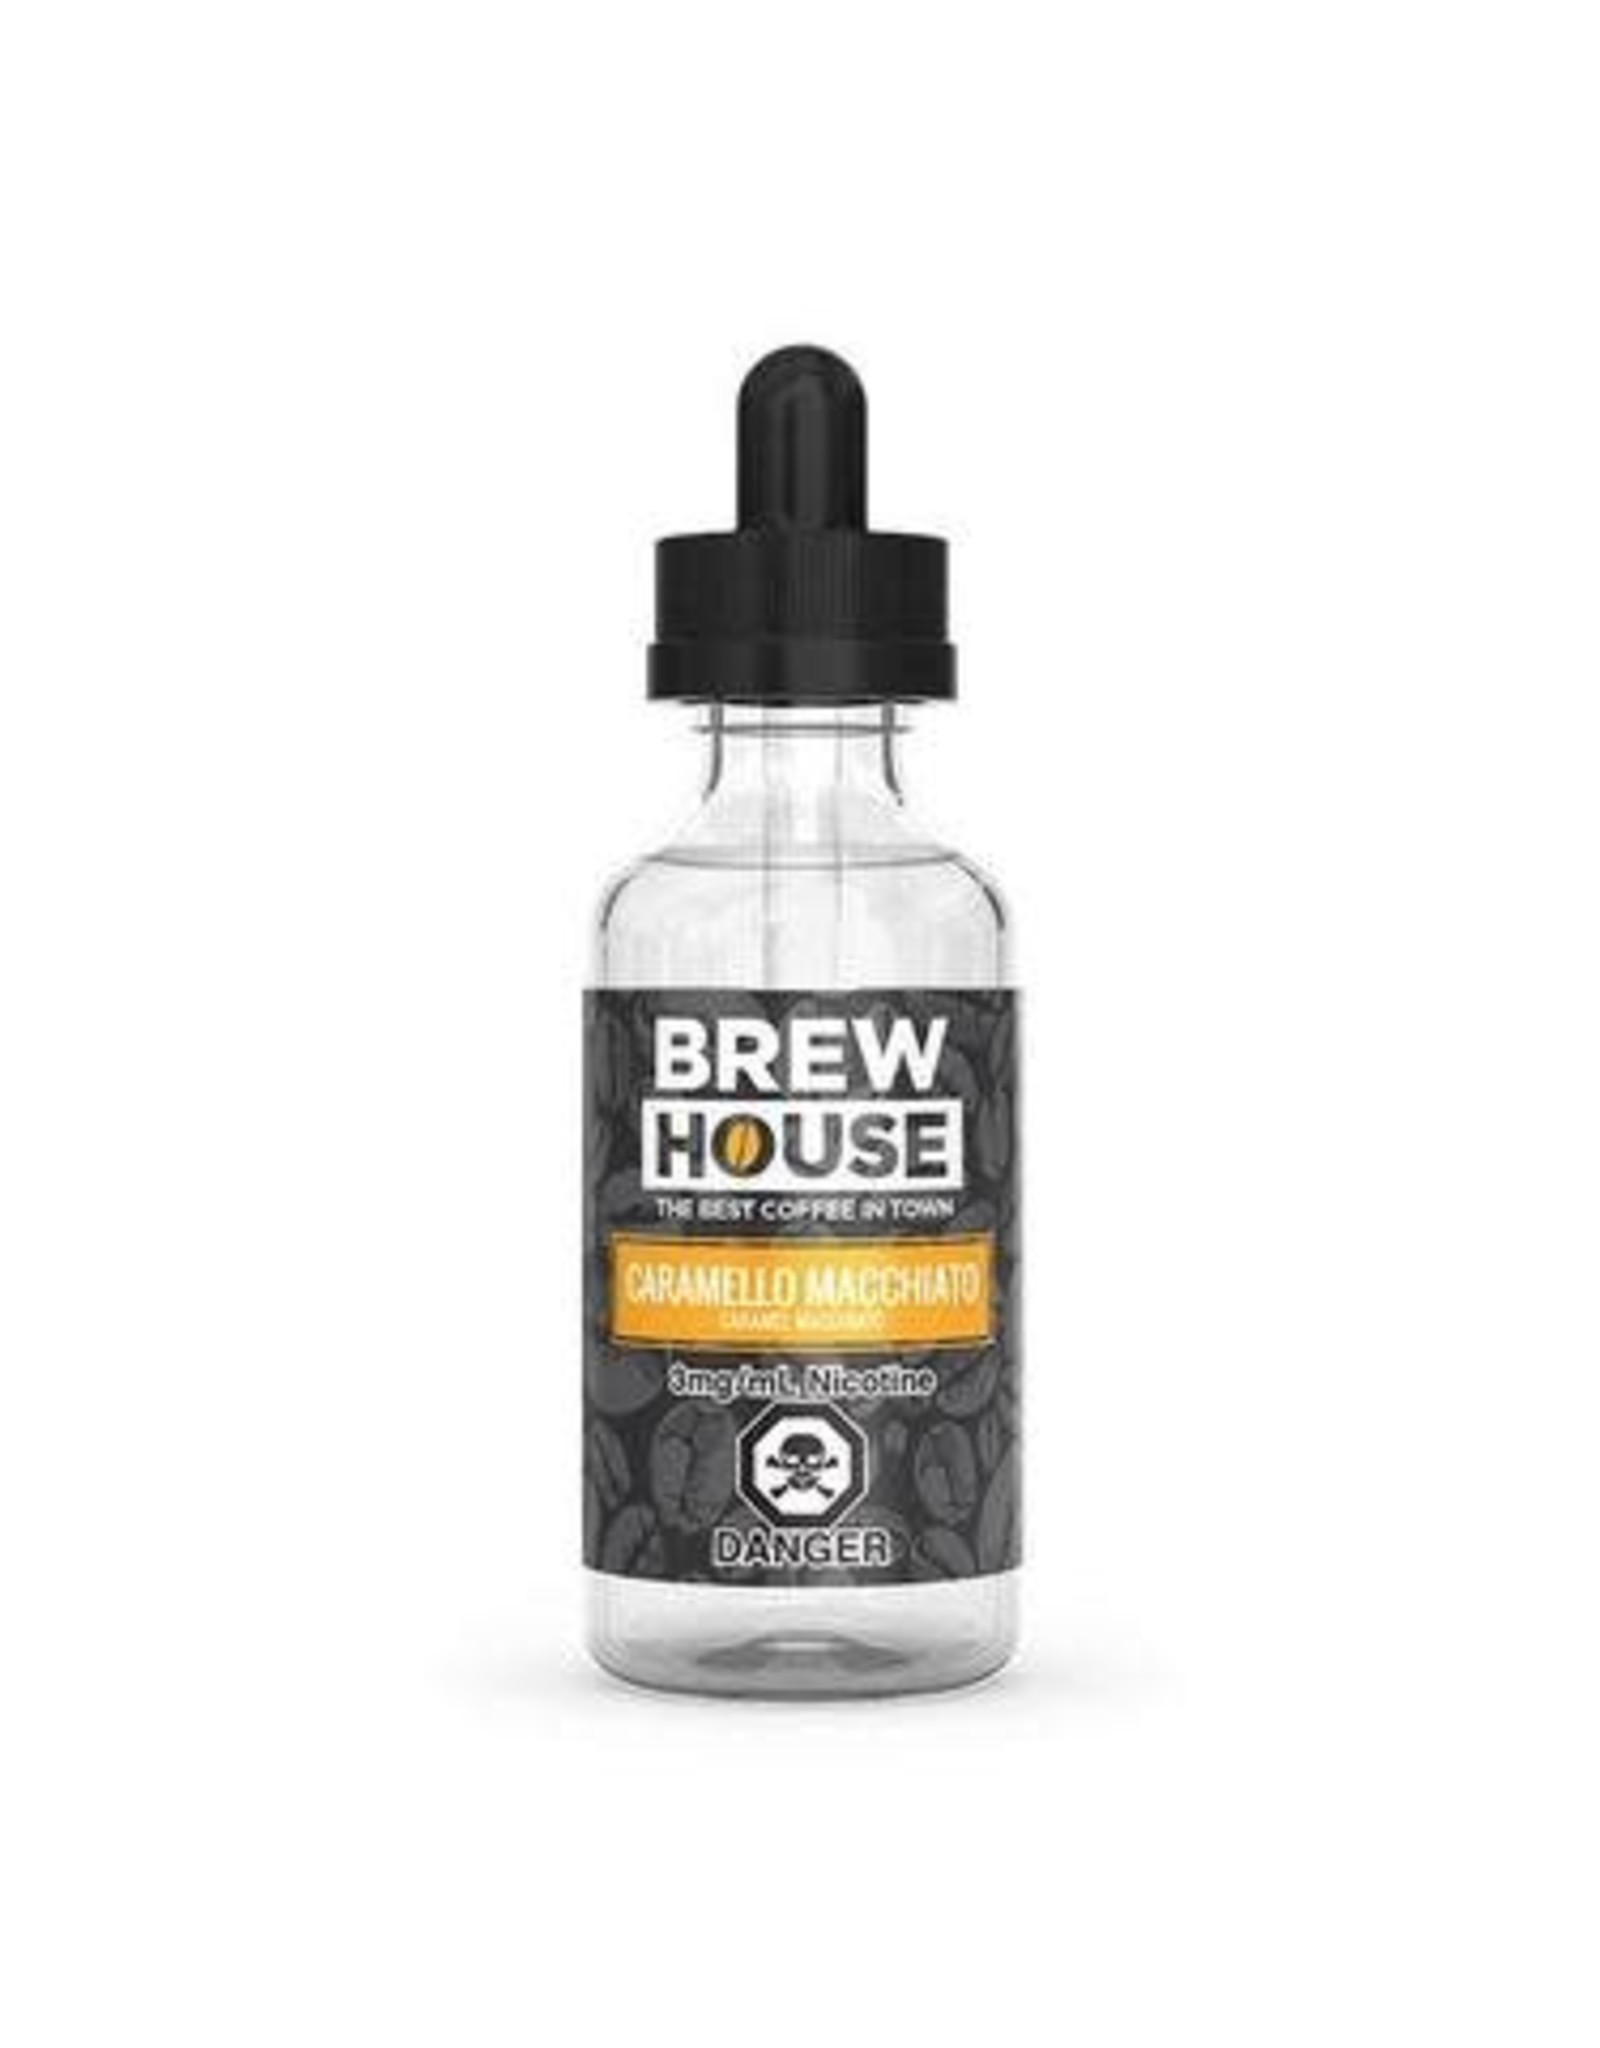 BREW HOUSE CARAMELLO MACCHIATO BY BREW HOUSE(60ml)